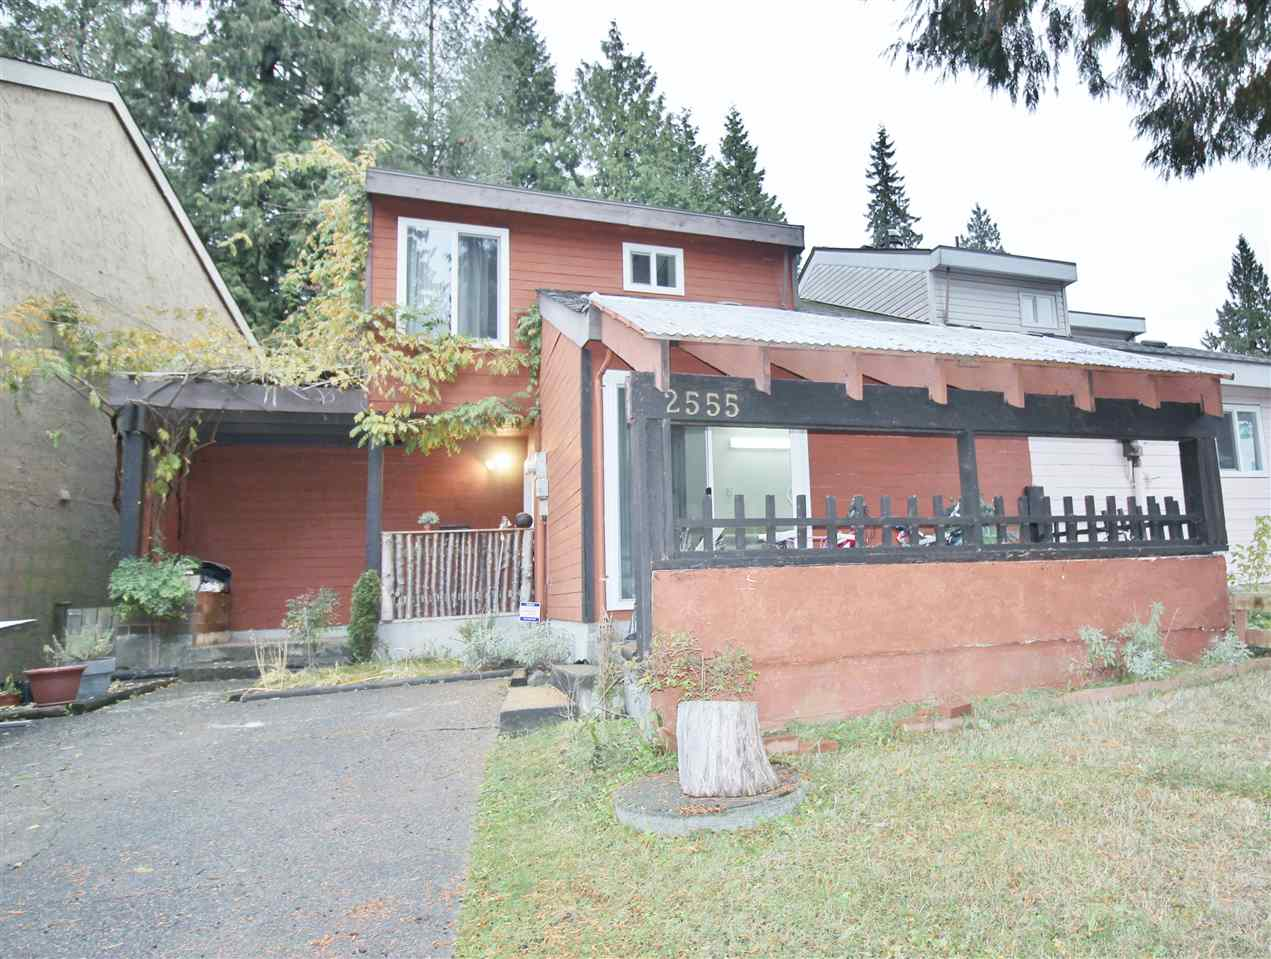 Rare Opportunity to Own this Half Duplex Family home in Central Coquitlam on a quiet street. Bright Living room, powder room, separate Family room & Laundry on the main floor. Kitchen with Dining area leads to covered wooden deck. 3 Bedrooms and Full bath upstairs. Updates include NEWER carpet, stove, Washer, covered decks. Close to everything, shopping, schools (RC MacDonald Elementary), transit and Mundy Park. Call to view anytime.